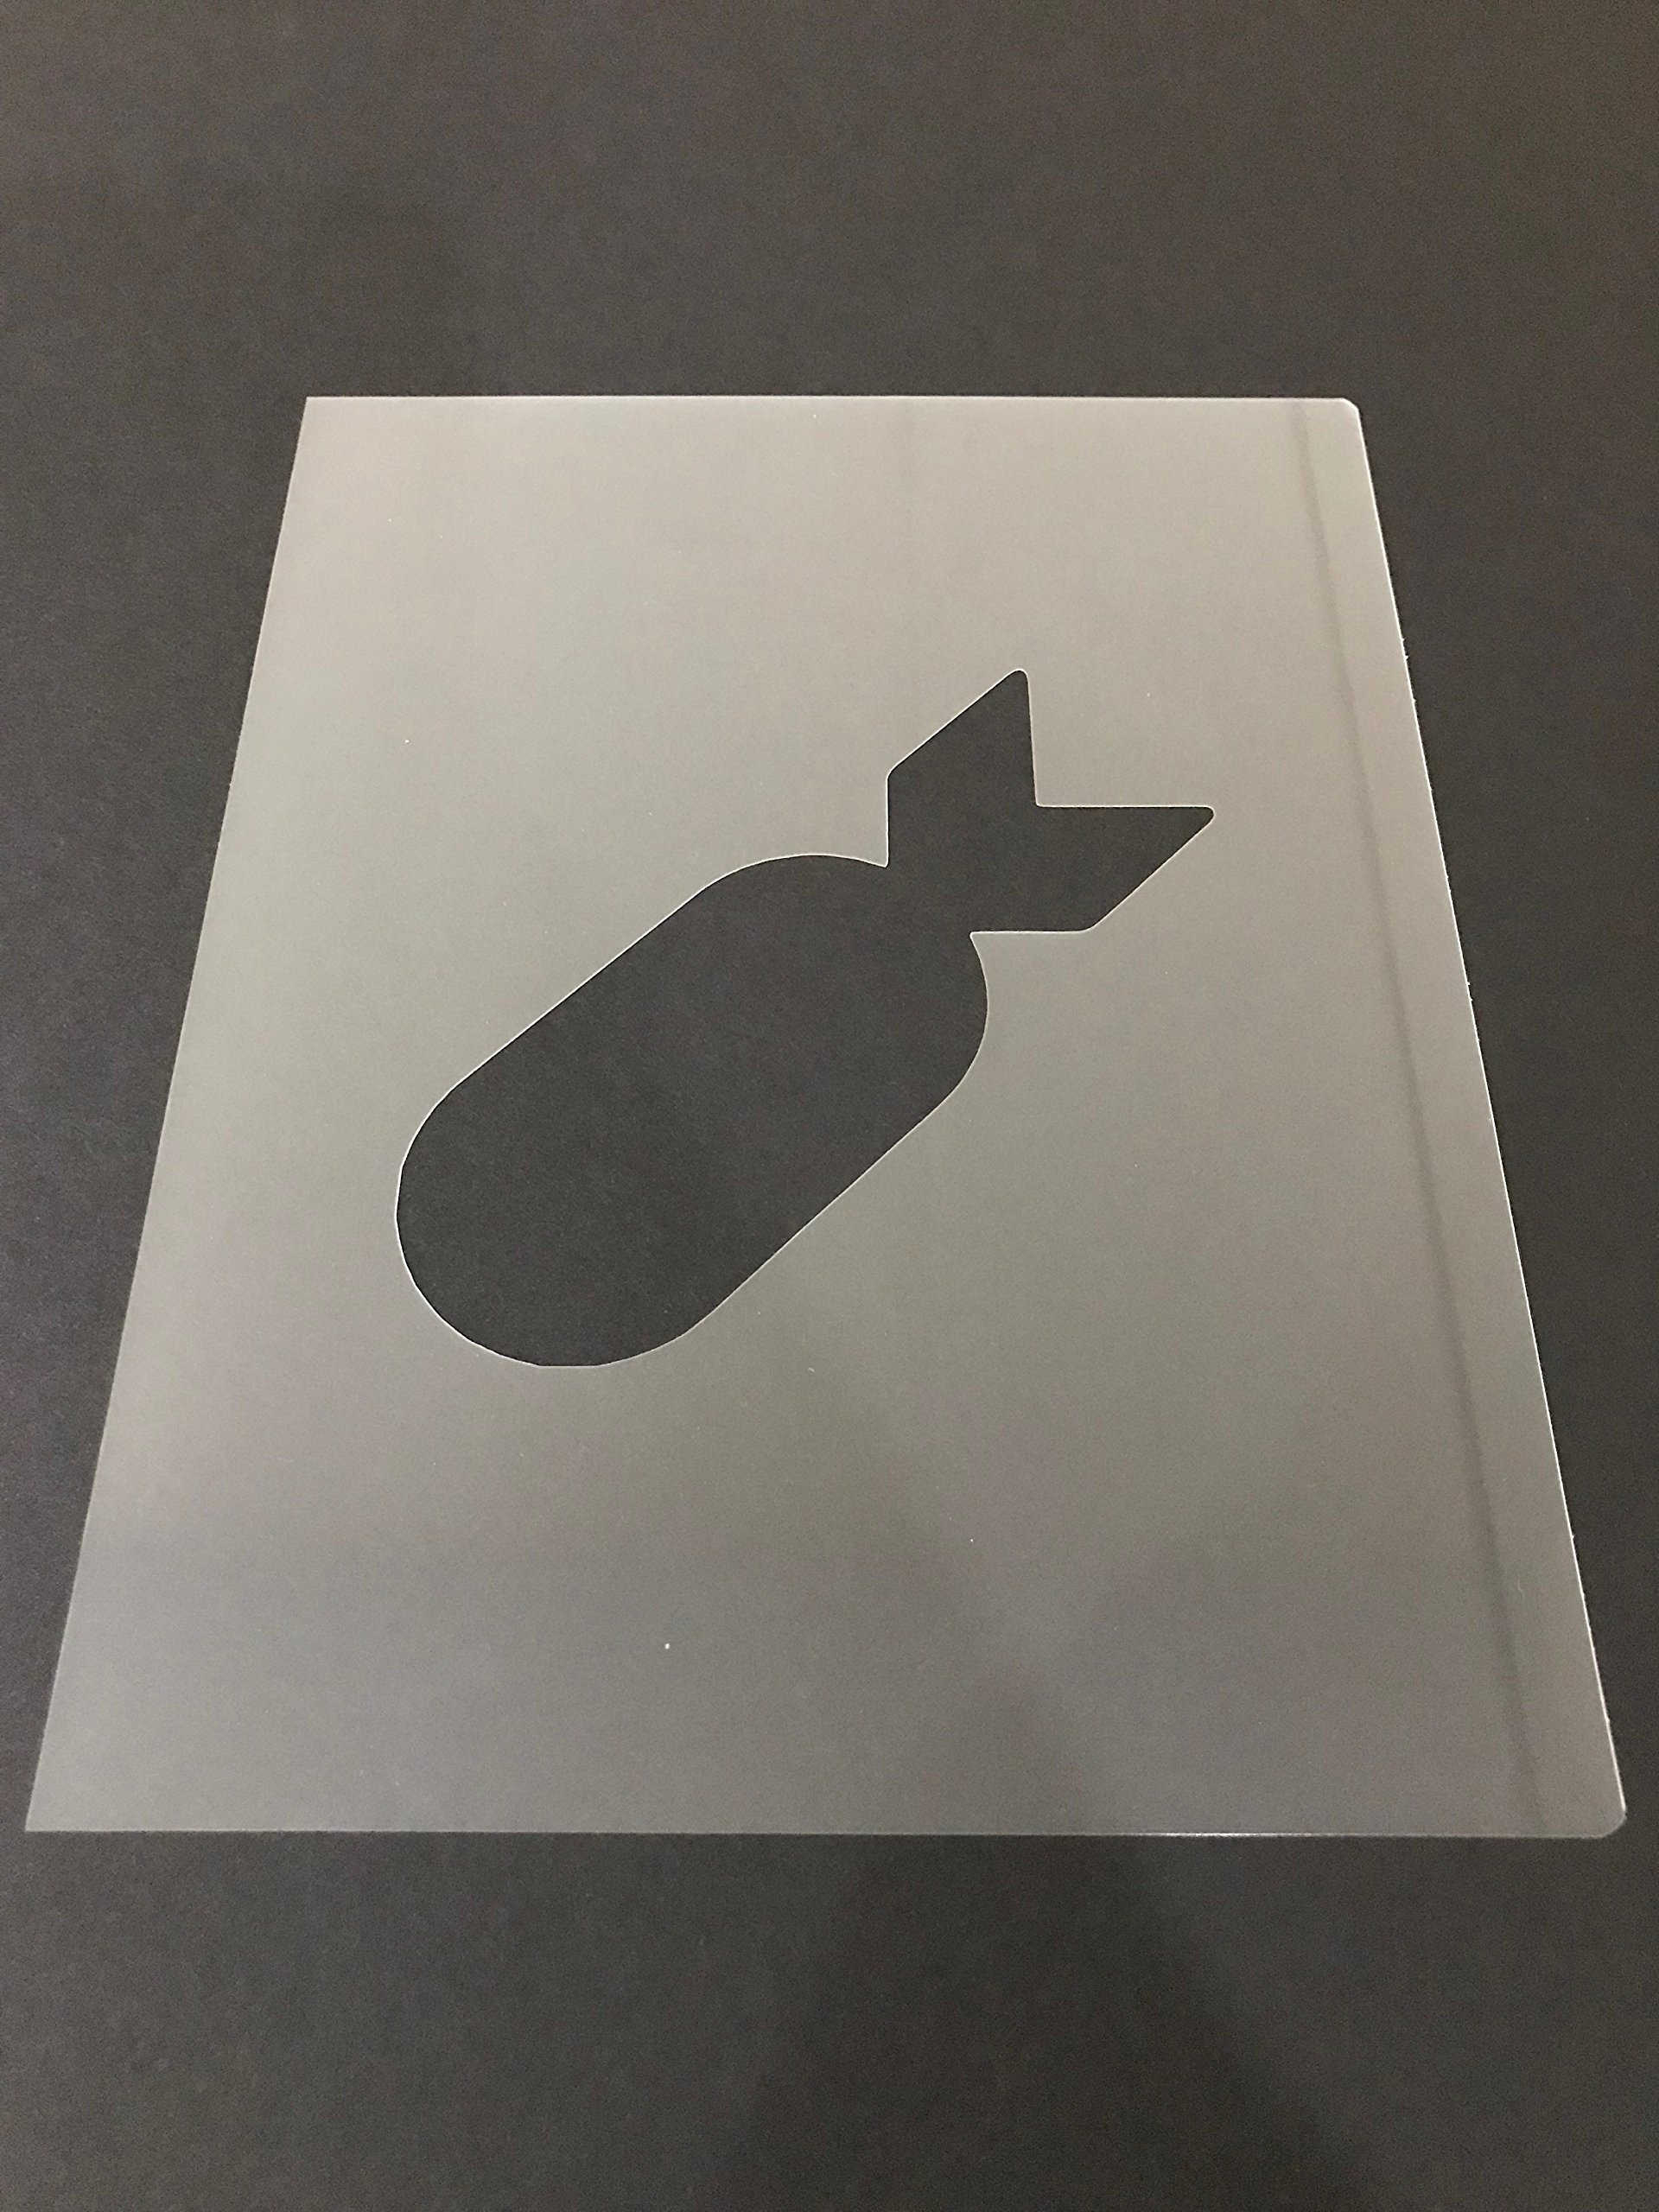 Bomb Stencil #5 Reusable 10 mil Thick 7in x 9in sheet by Everyday Funny Finds